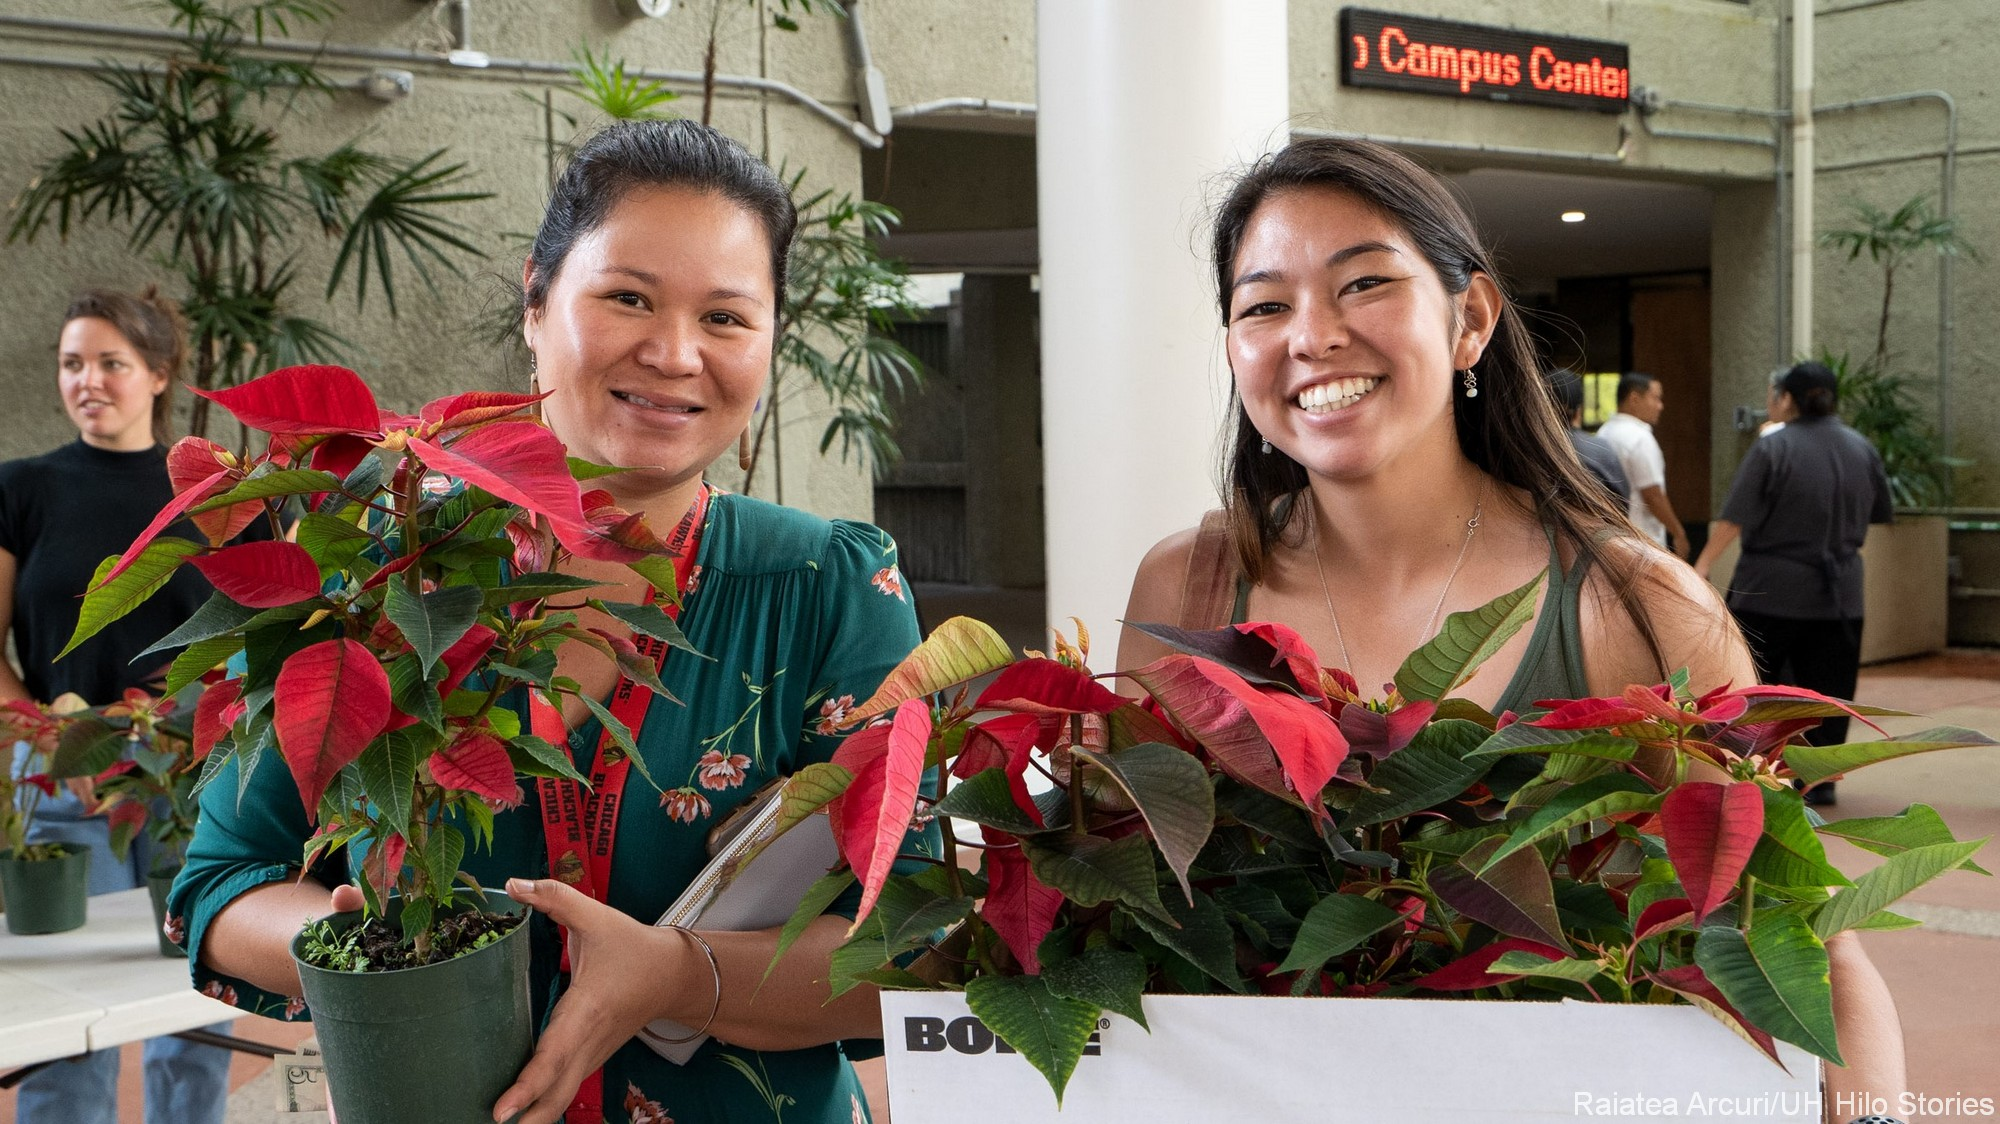 Two women holding poinsettia plants.